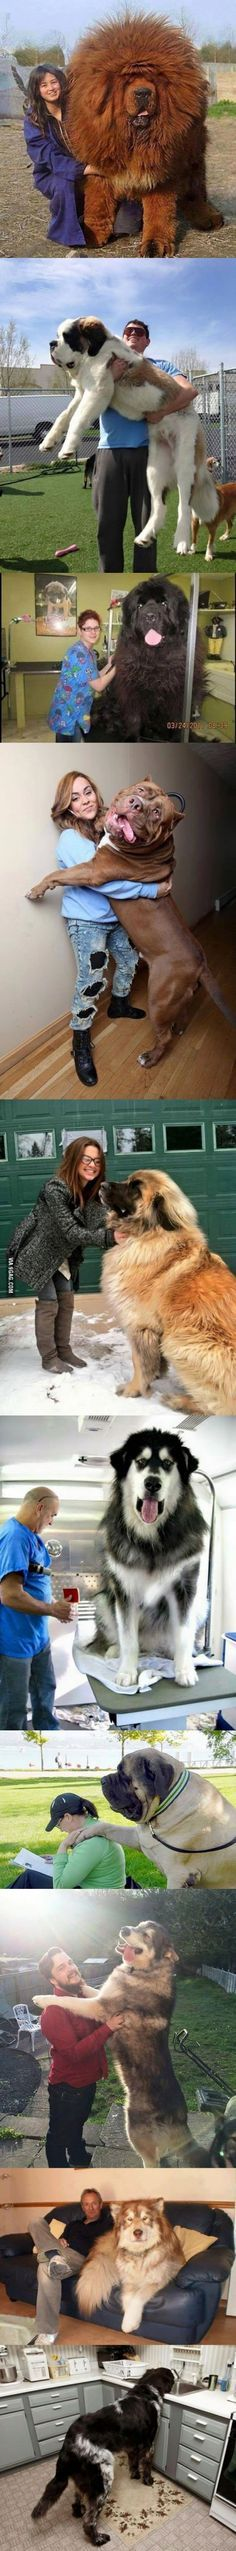 These are the biggest dogs in the world